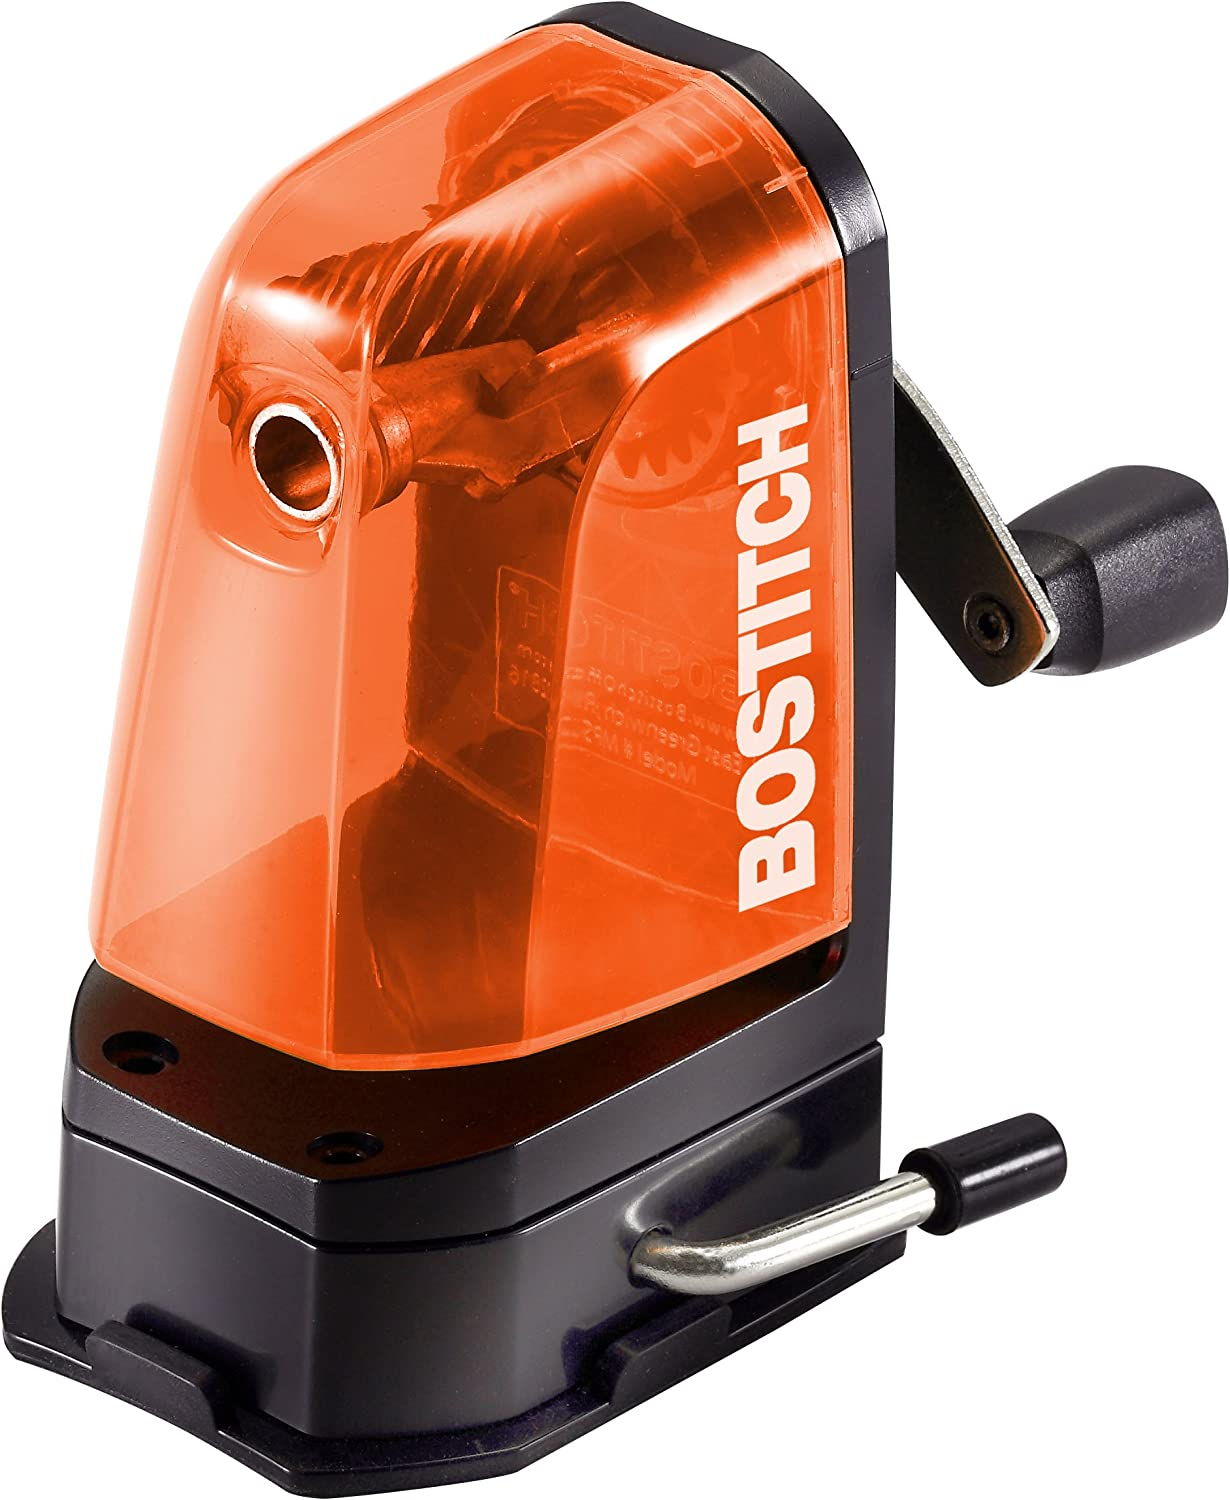 Bostitch Multi-Mount Manual Pencil Sharpener, Vacuum Mount or Screw Mount, Orange (MPS2-ORG)